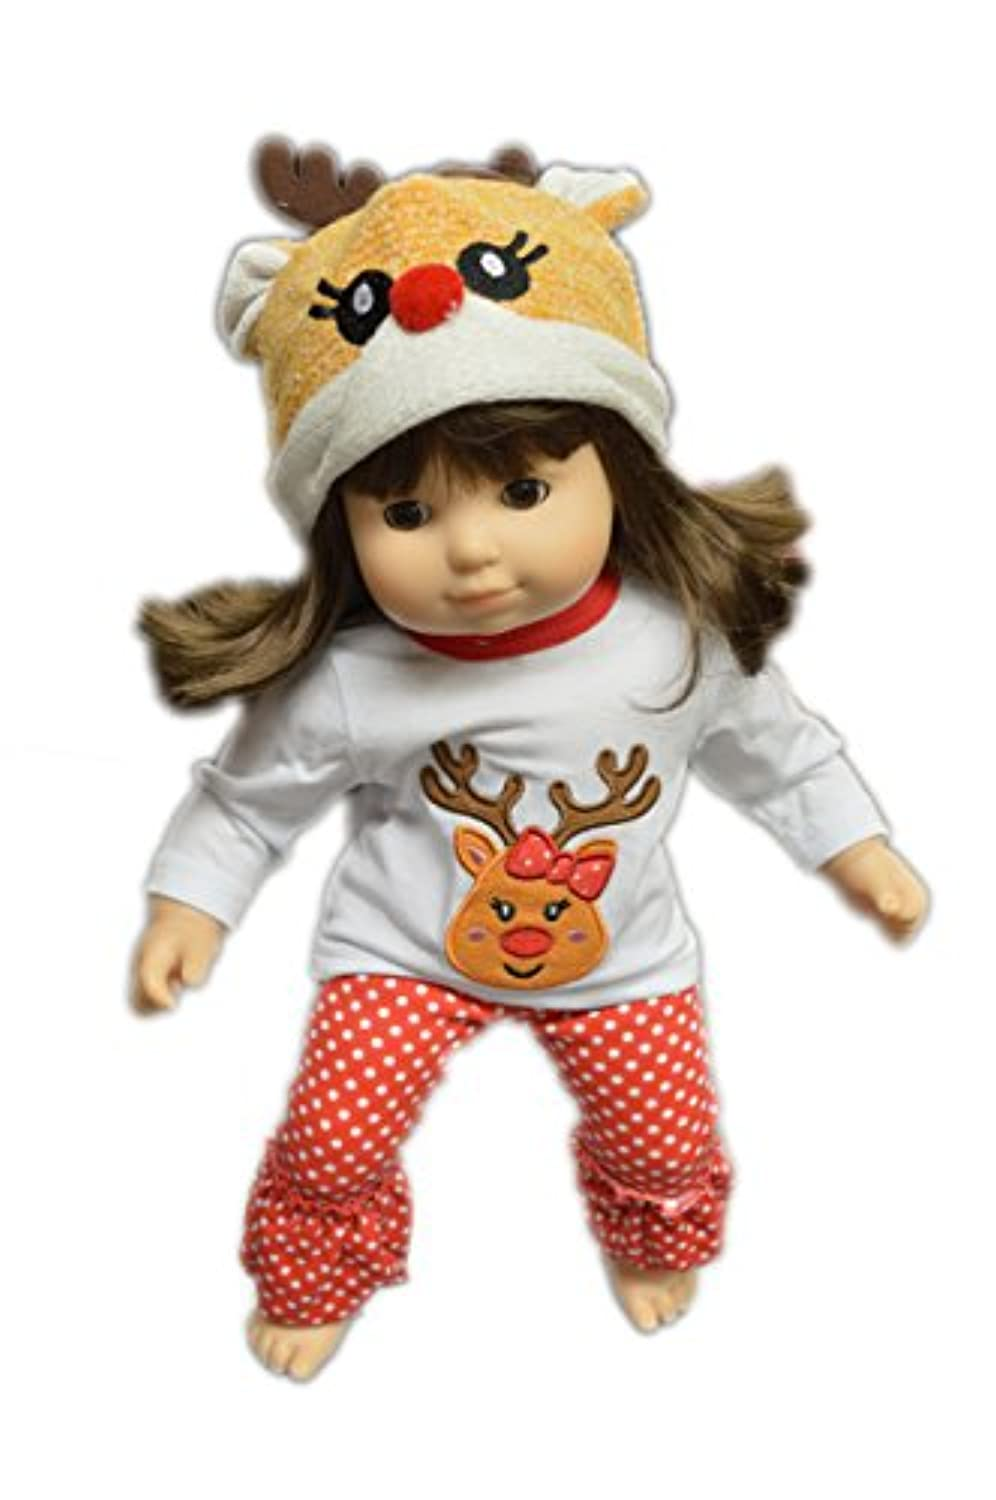 My Brittany's Reindeer Pj Lounge Set for Bitty Twins